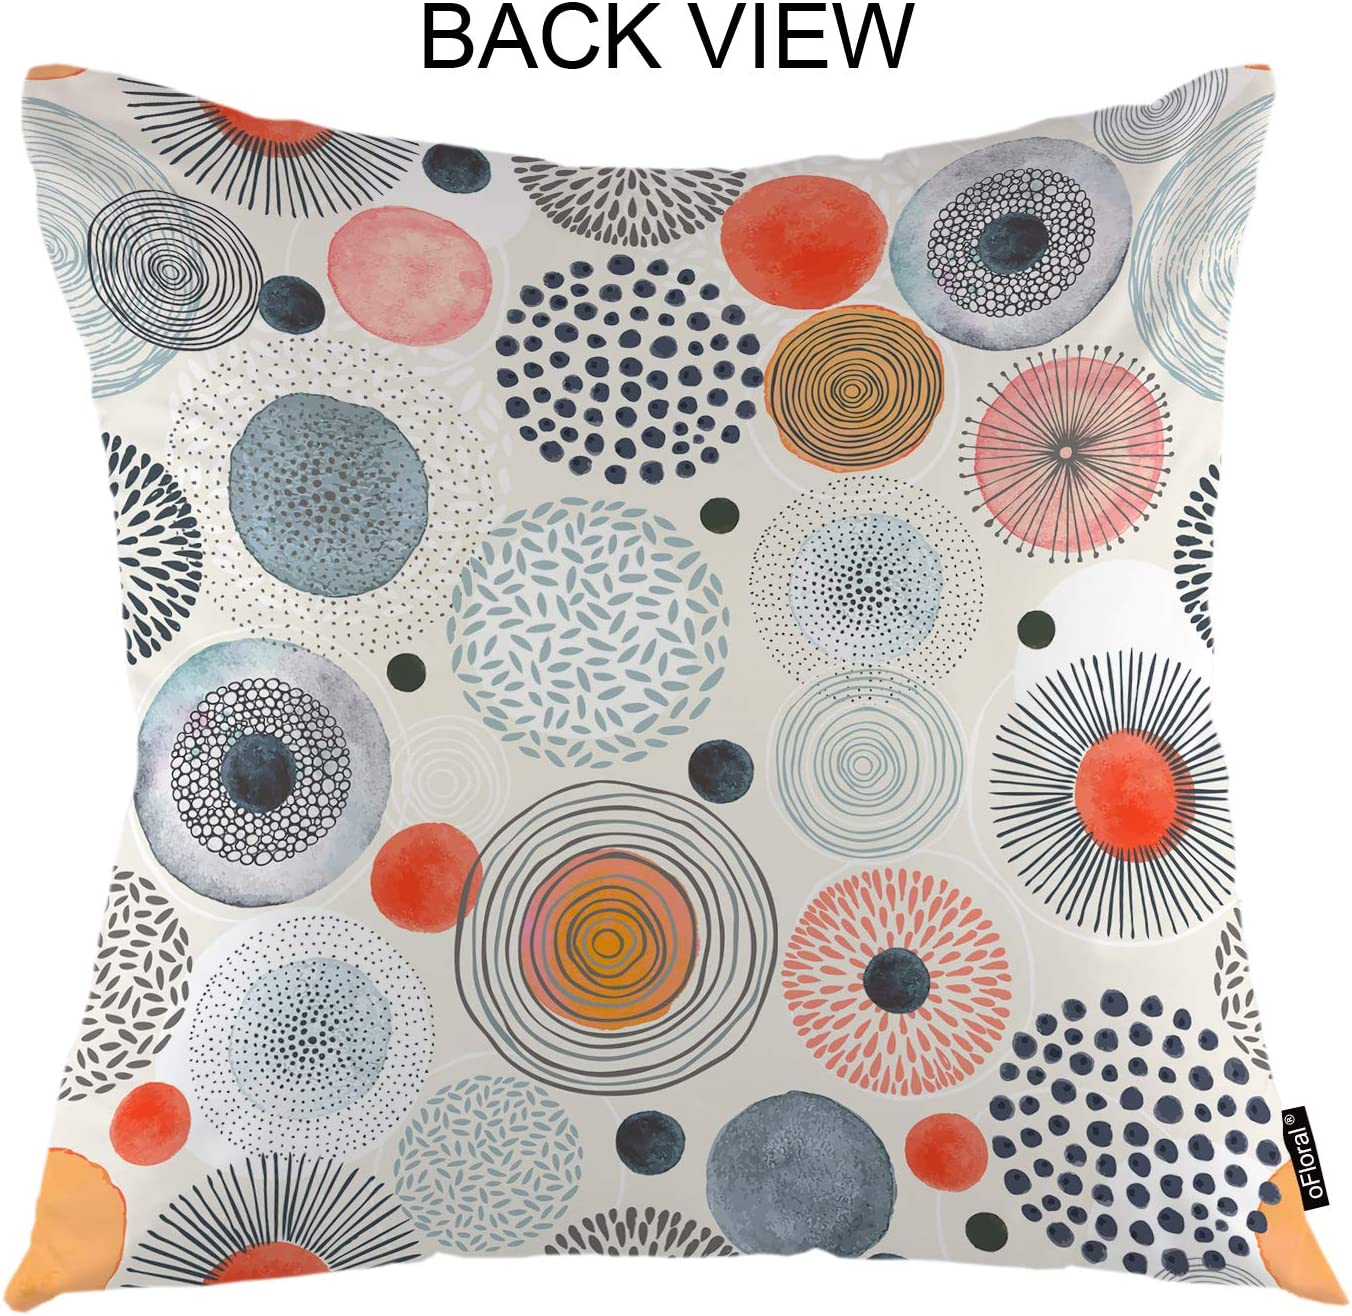 Amazon Com Ofloral Circles Throw Pillow Cover Round Spot Sun Ray Fireworks Decorative Square Pillow Case 18 X18 Pillowcase Home Decor For Sofa Bedroom Home Kitchen